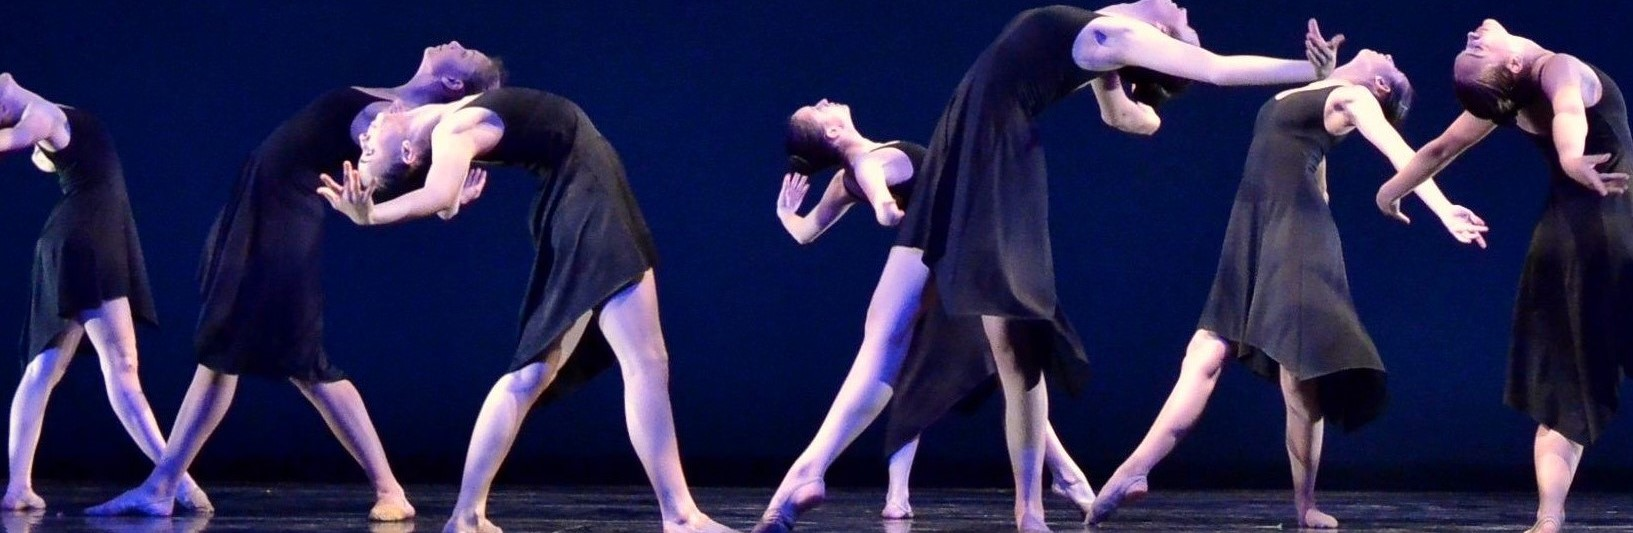 Dance Cavise dancers on stage in black dresses performing a modern dance at a performance at SUNY Purchase